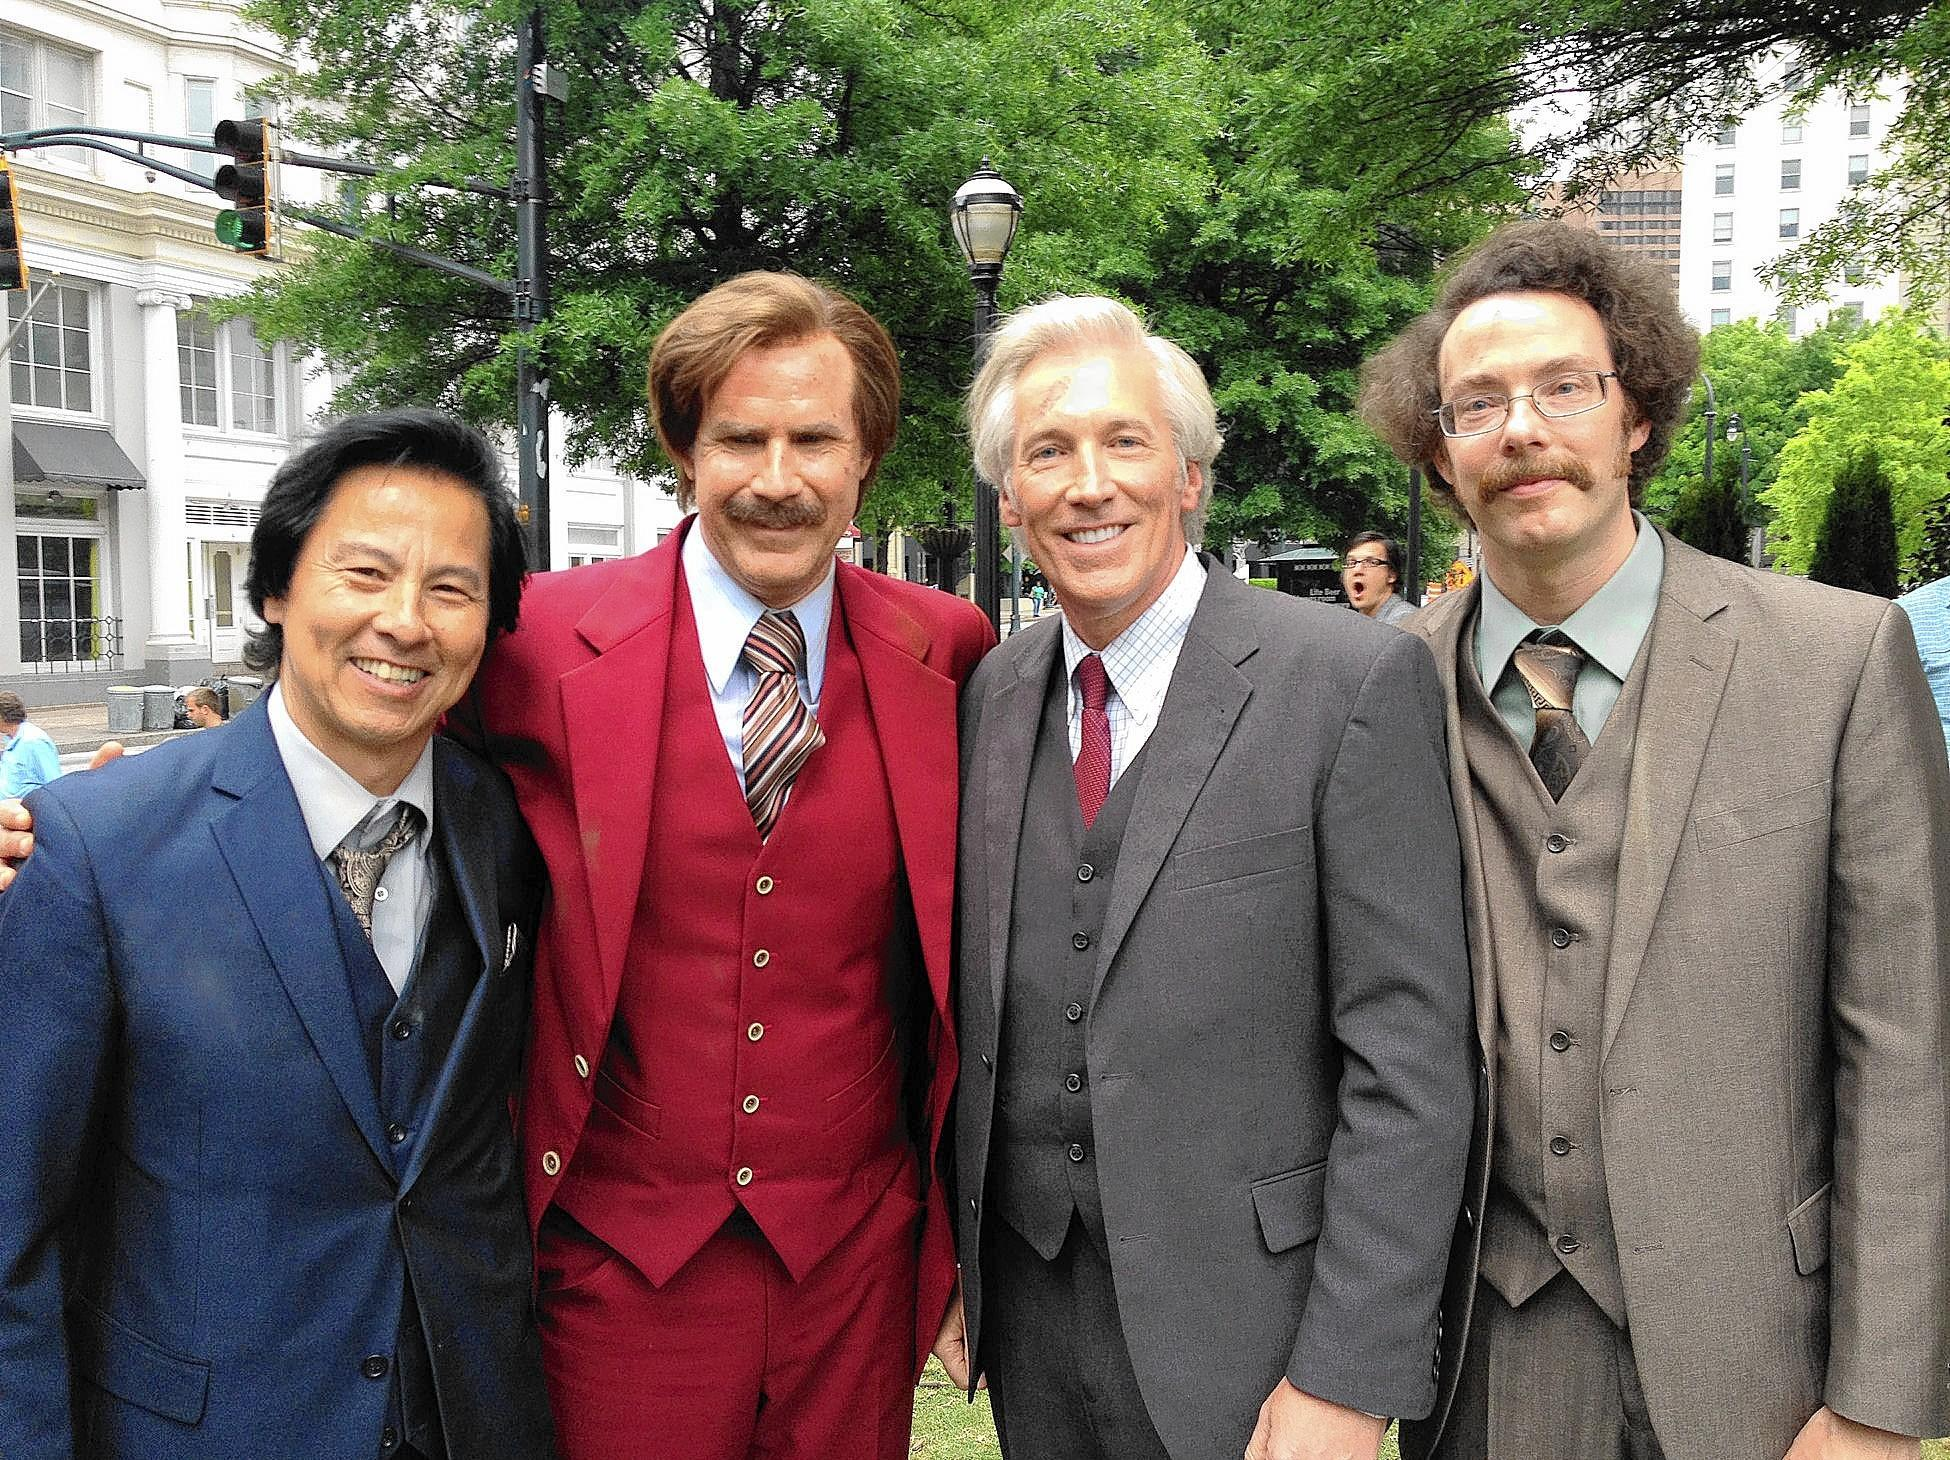 A new, R-rated, super-sized version of 'Anchorman 2,' starring Paul Chappell (left), Will Ferrell, Allentown native Fred Galle and Patrick Williams, is in theaters for a week.